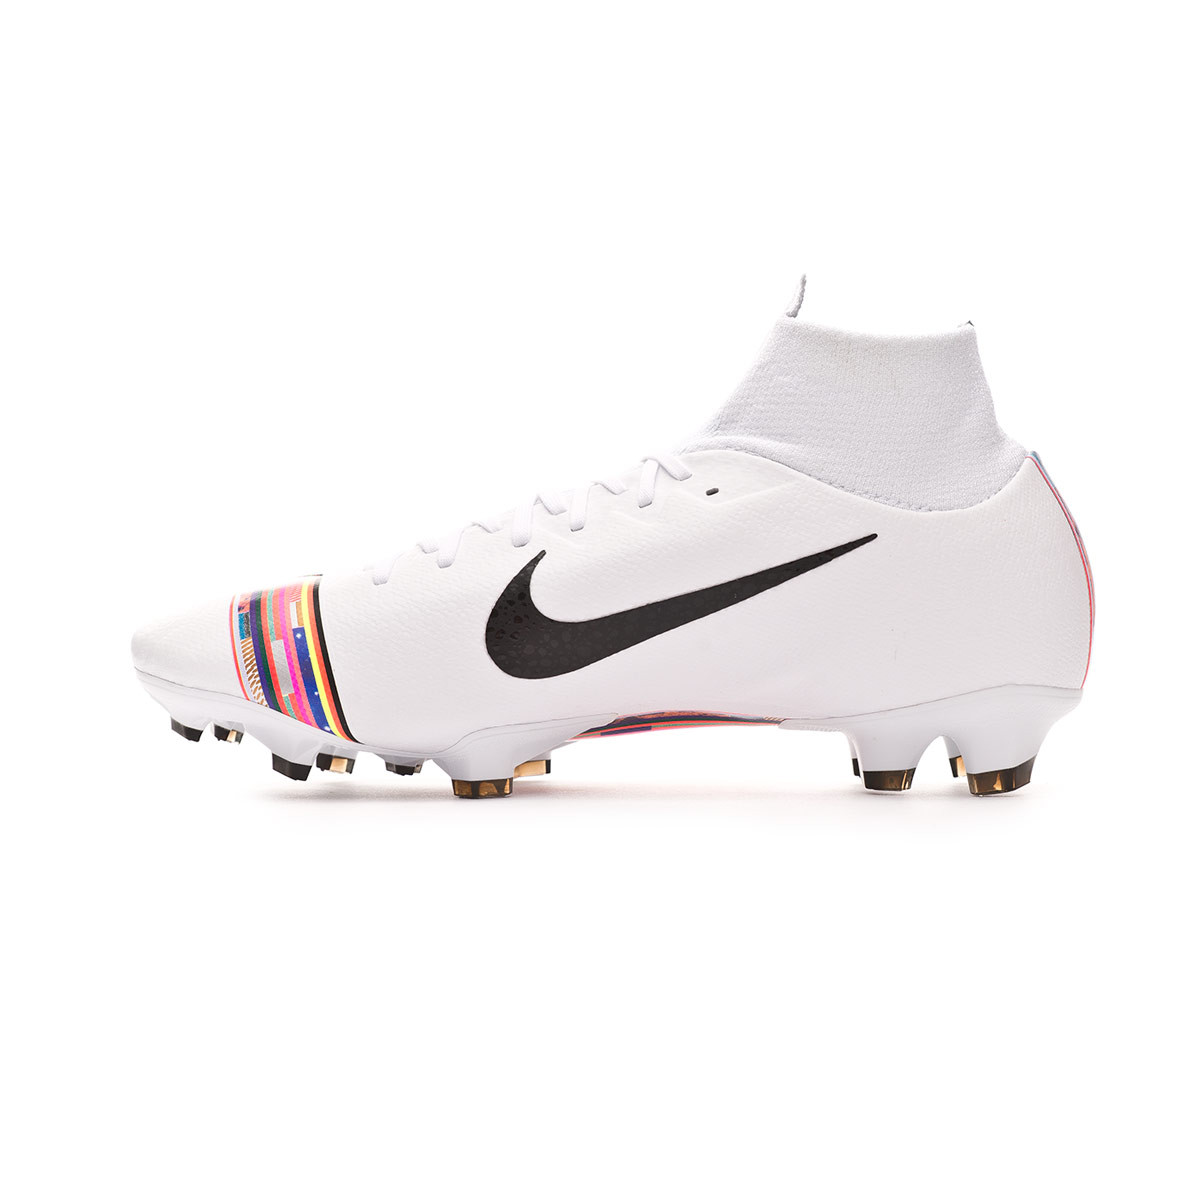 b01e85f4b857 Football Boots Nike Mercurial Superfly VI Pro LVL UP FG Pure platinum-Black-White  - Football store Fútbol Emotion